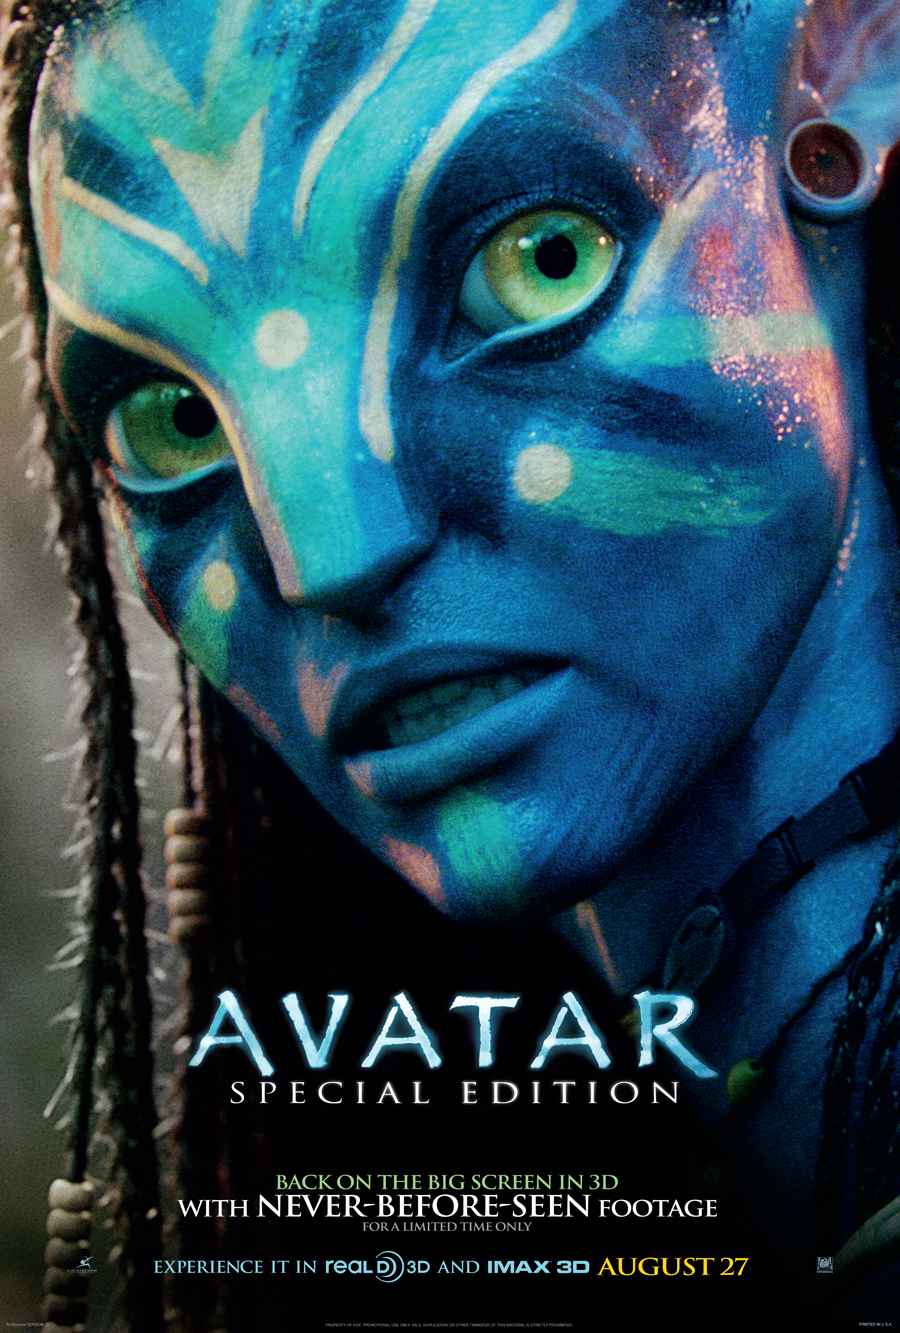 lsodpsoiuydf avatar 2009 movie poster